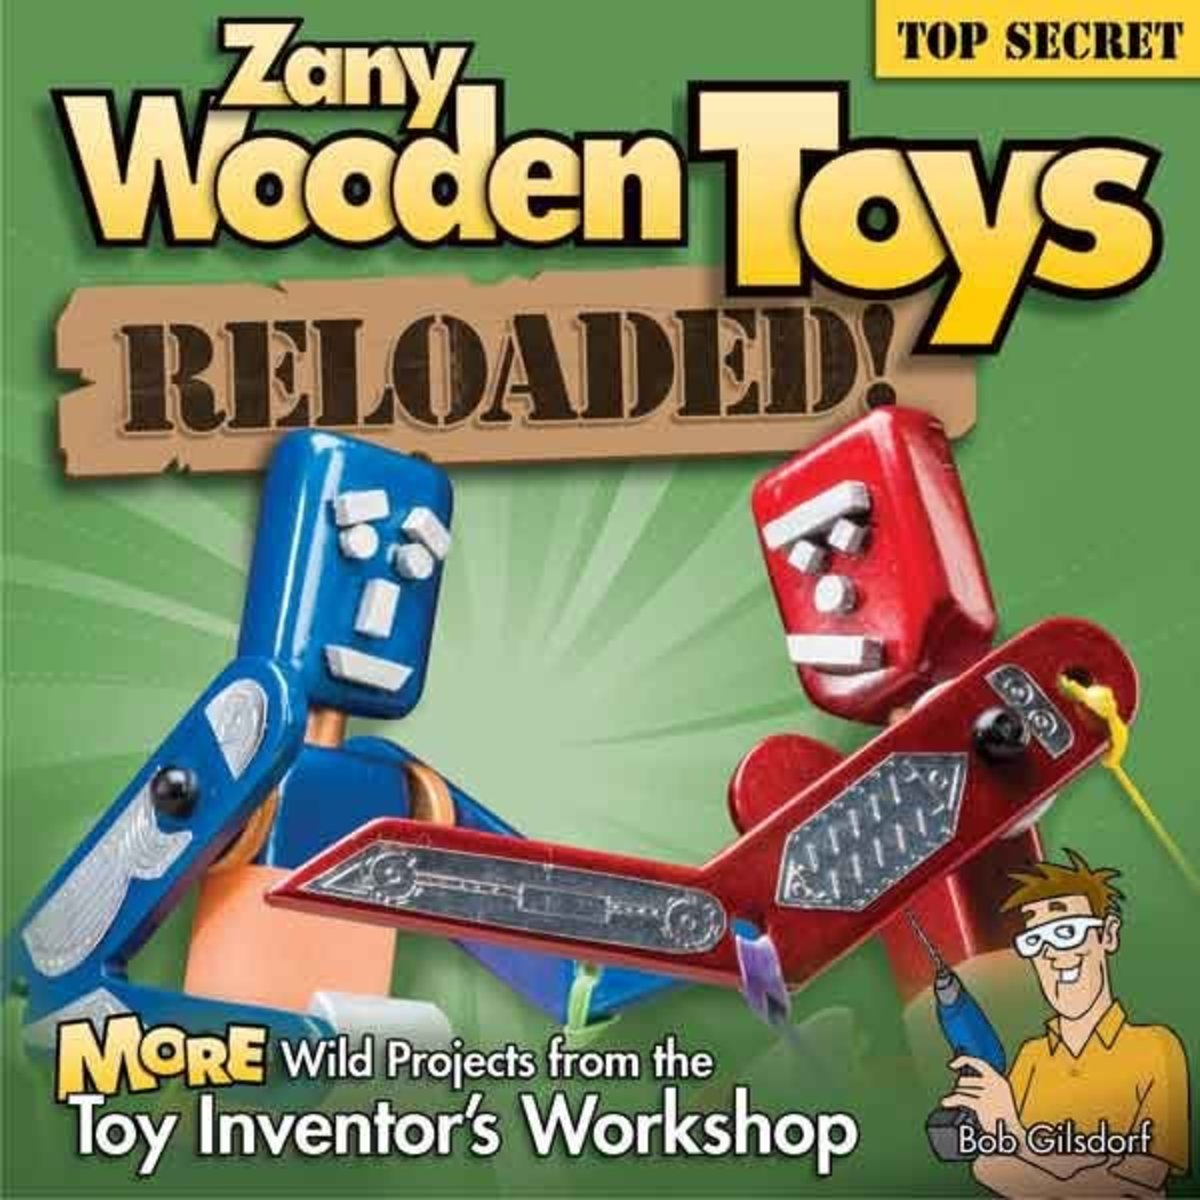 fox chapel - zany wooden toys reloaded